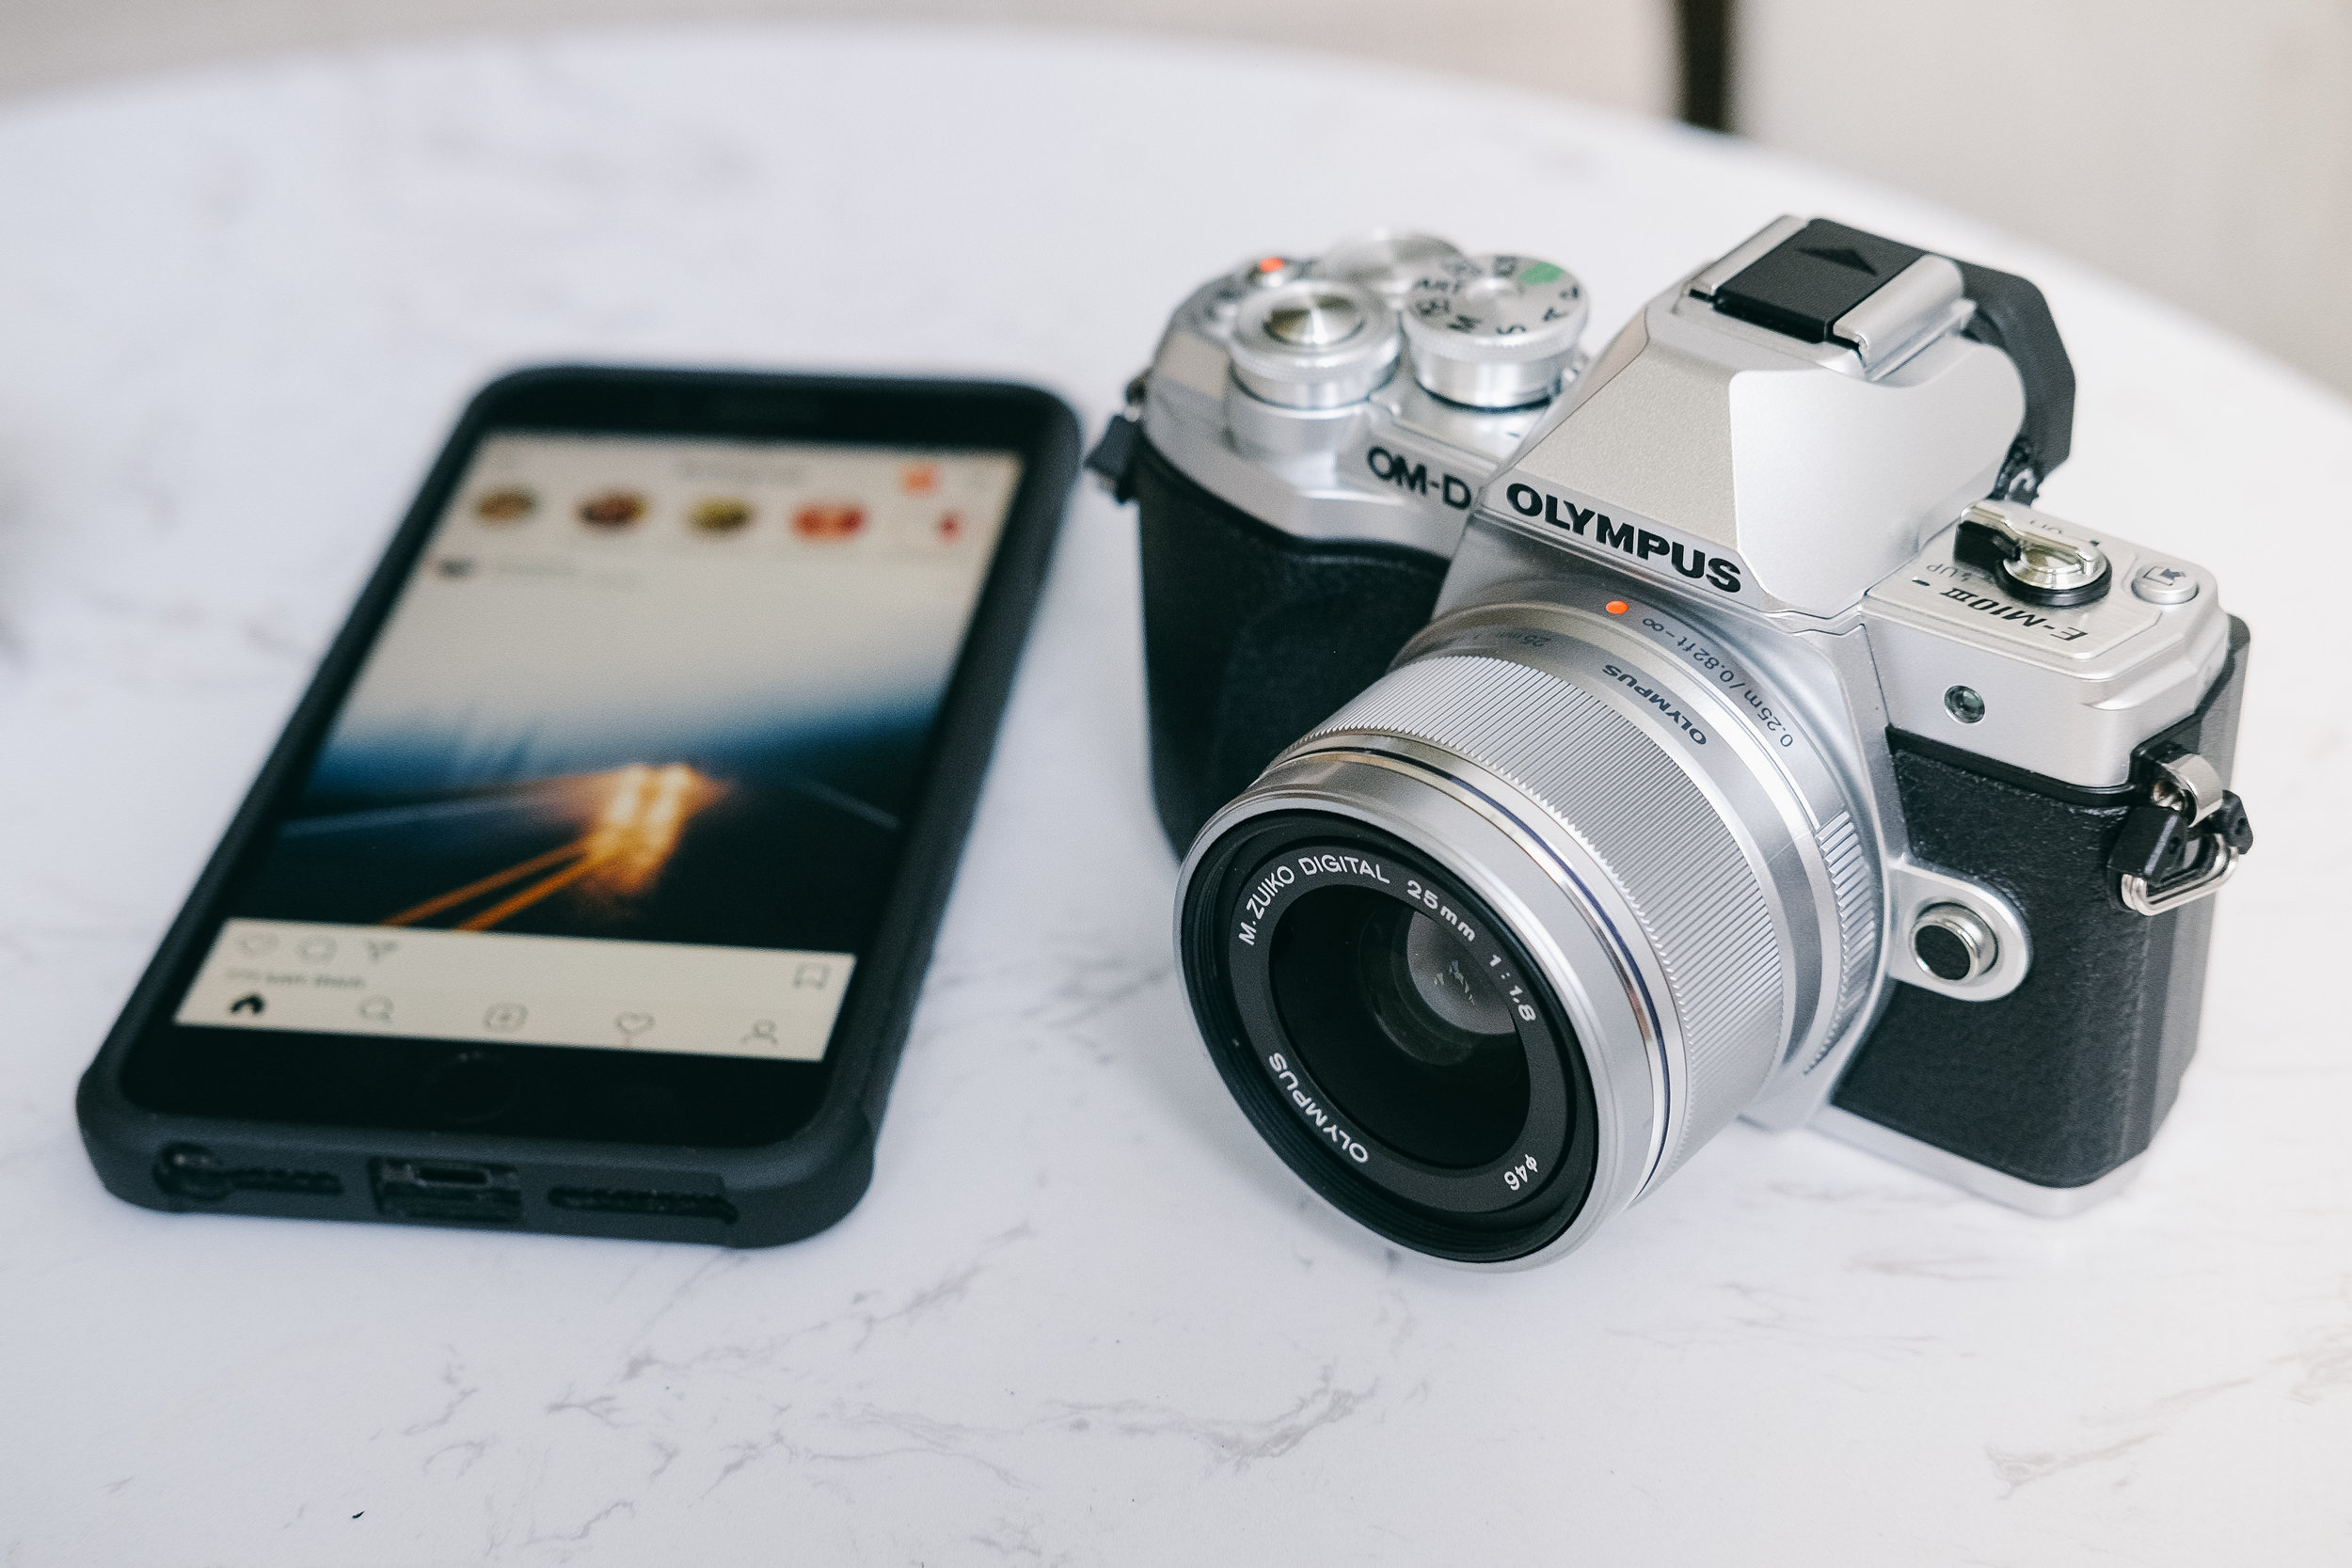 image of phone with instagram app open and an olympus camera next to it